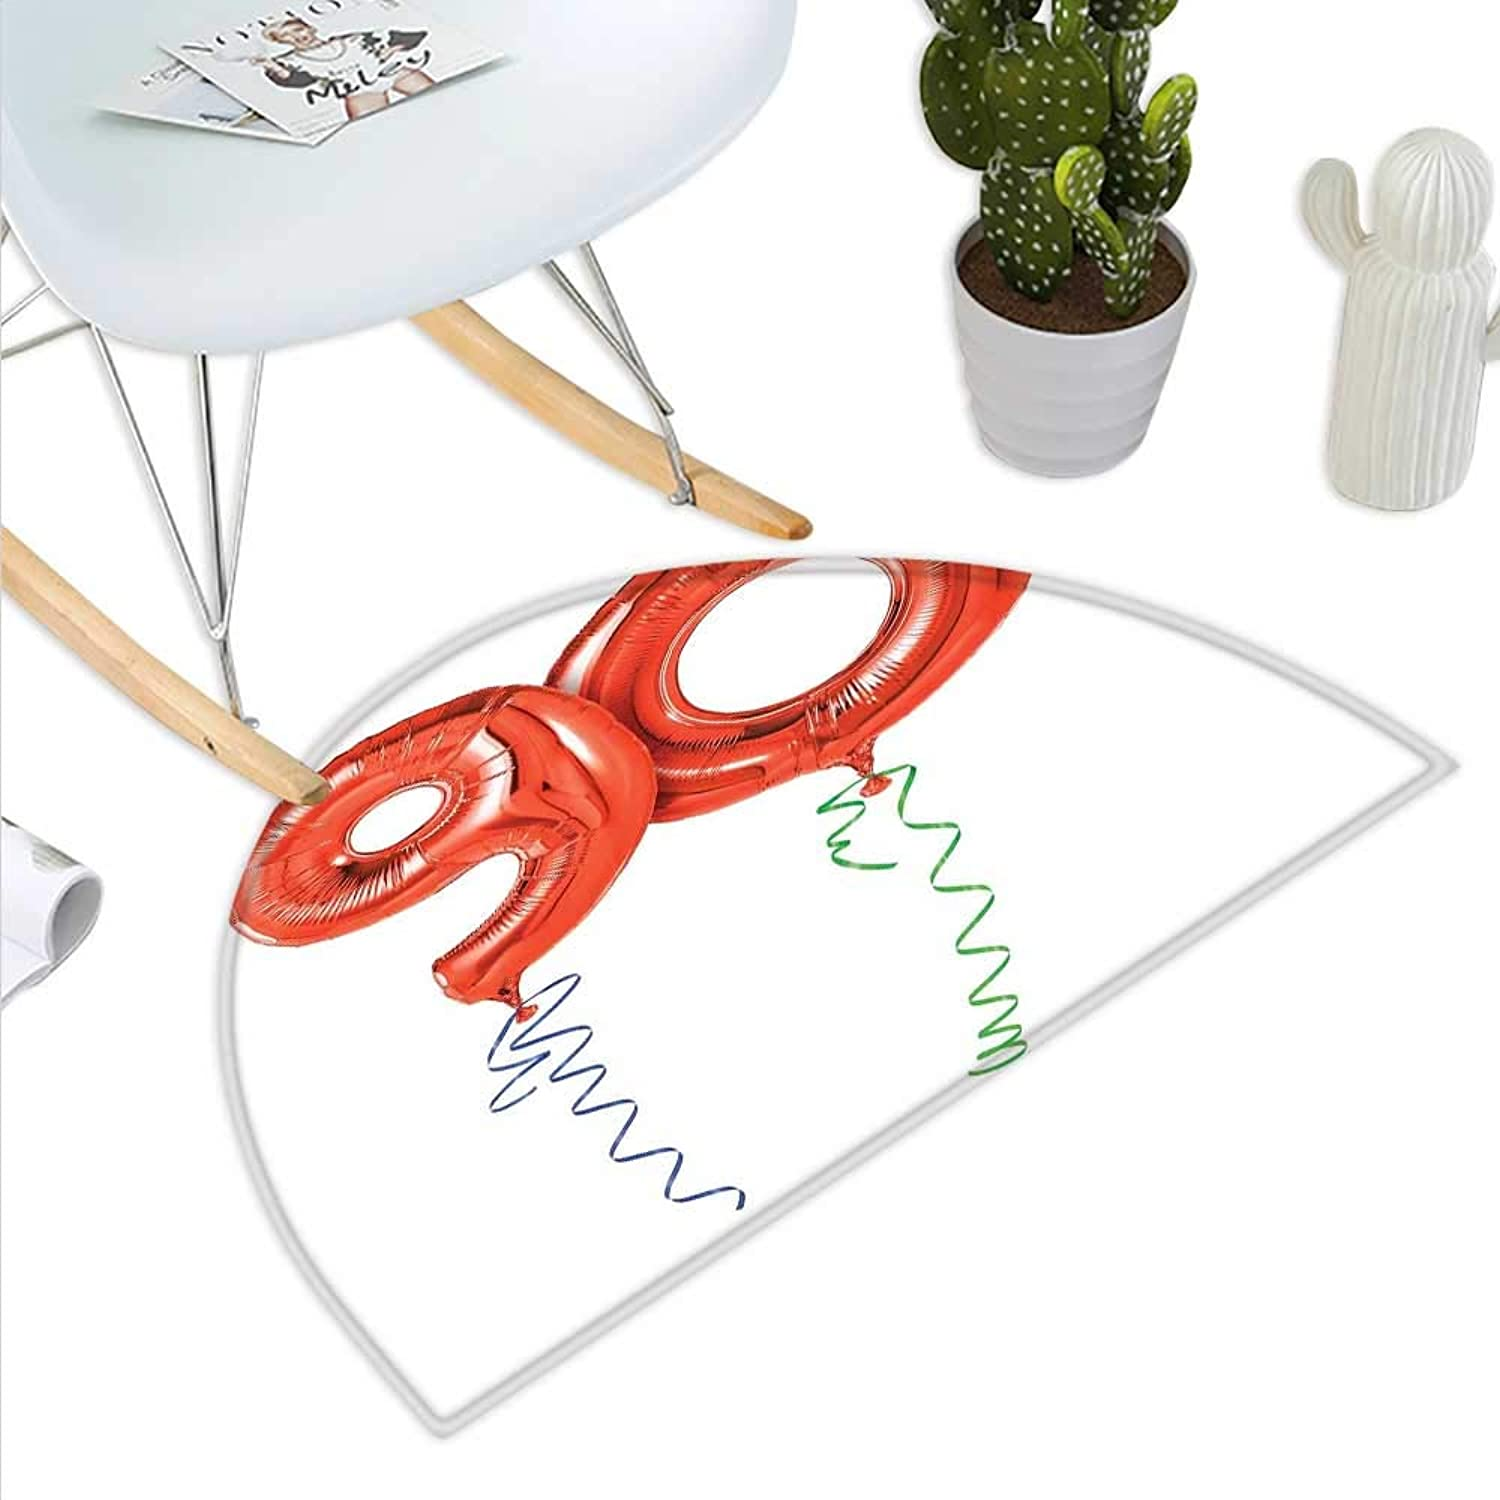 90th Birthday Semicircle Doormat Flying Balloons and Party Objects Curly Swirled Ribbons Surprise Event Halfmoon doormats H 47.2  xD 70.8  Red Green bluee